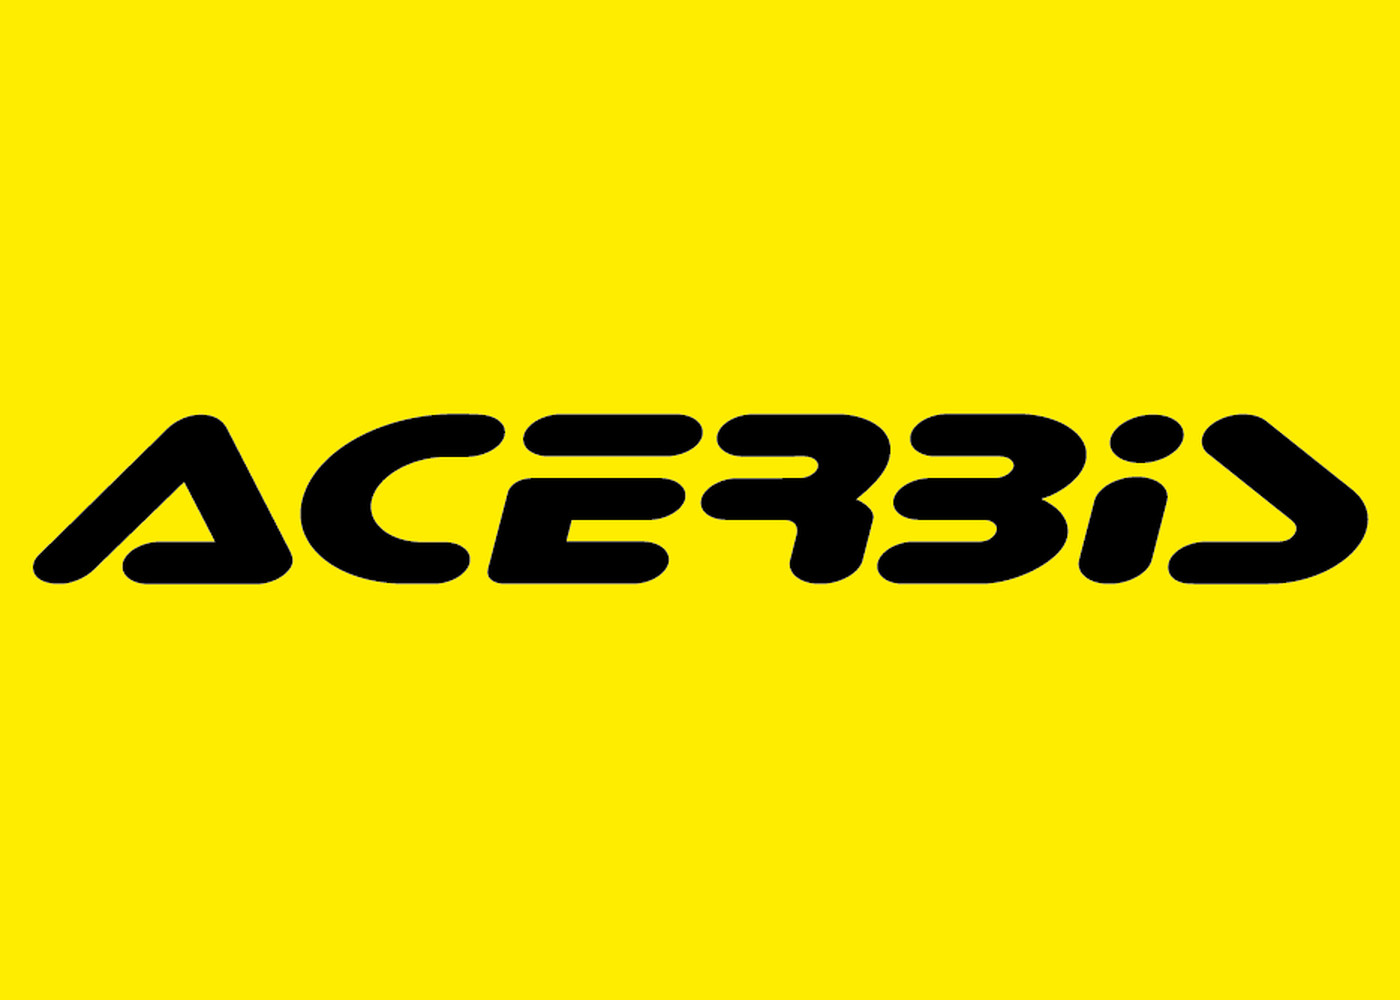 LED VISION HP HEADLIGHTS - Acerbis USAAcerbis